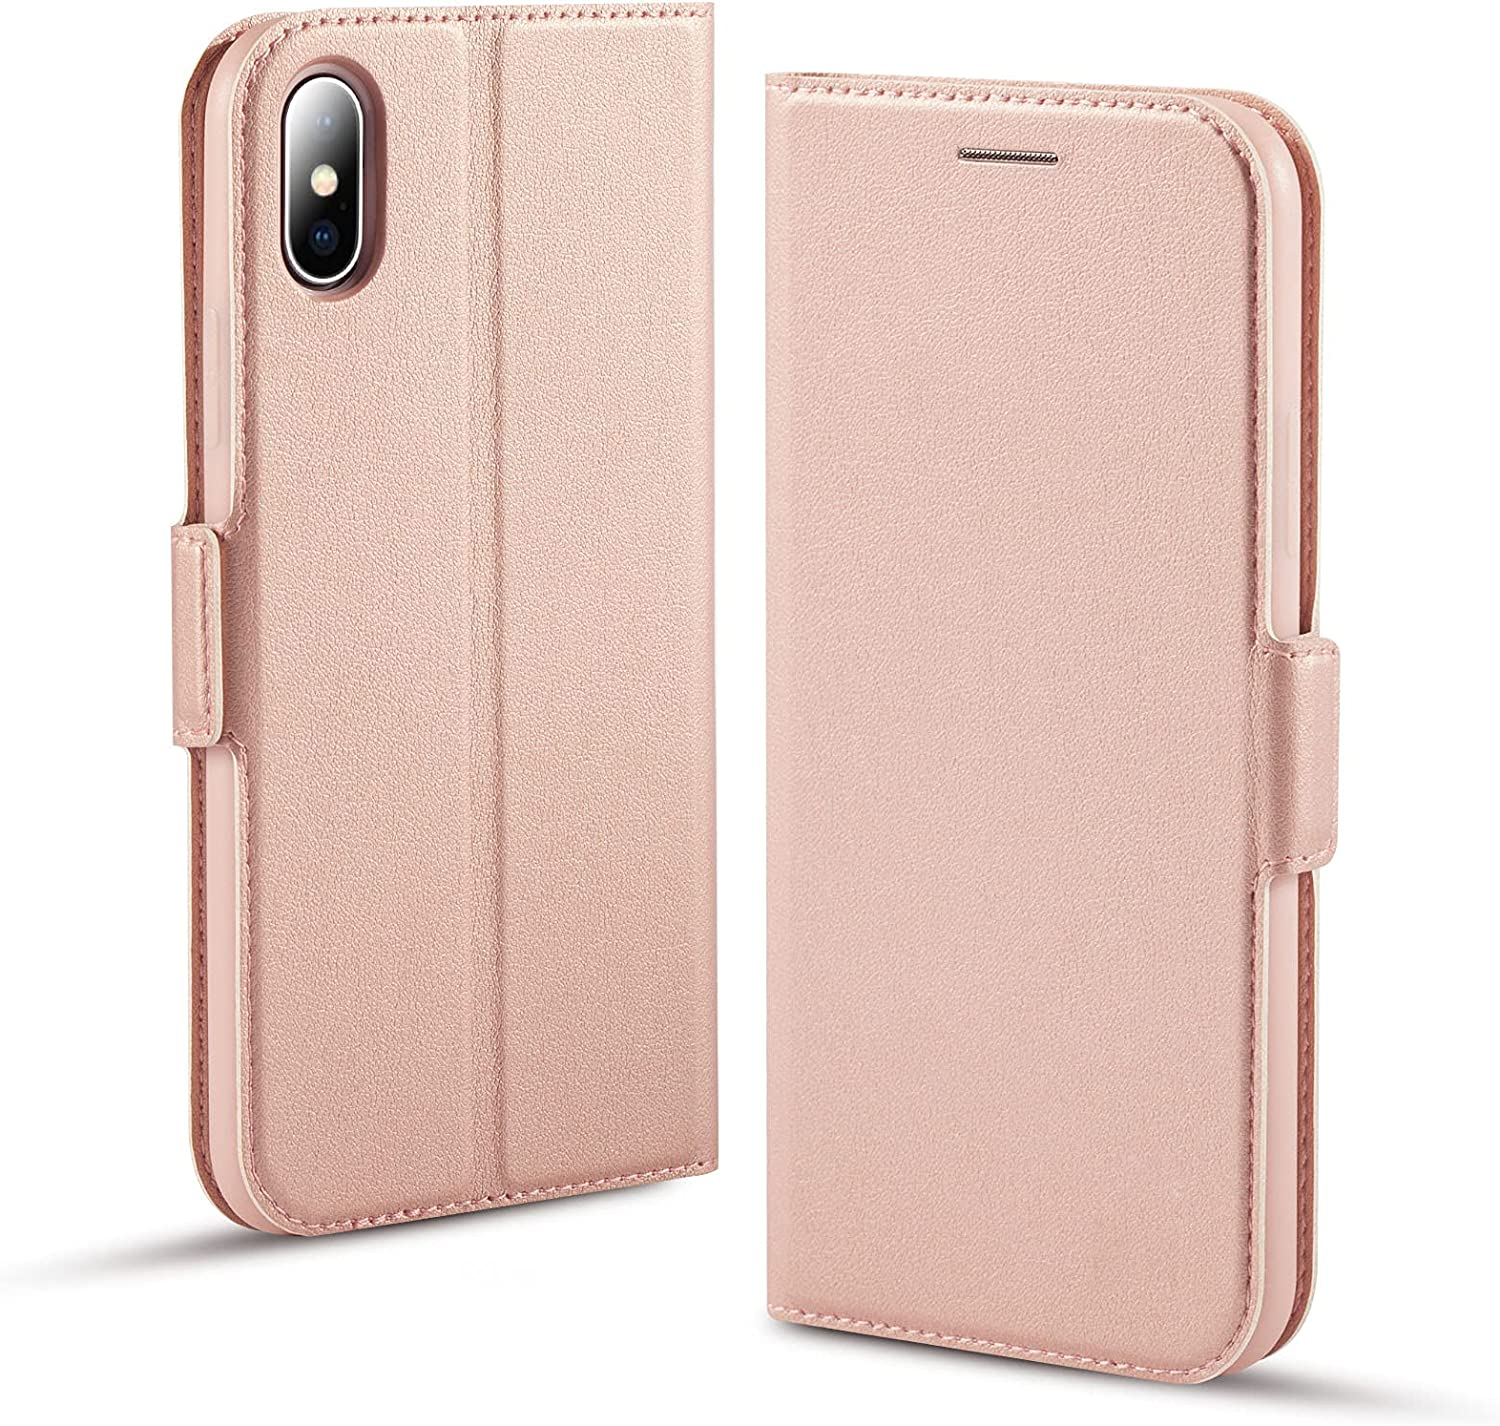 iPhone Xs Case, iPhone X Phone Case, iPhone Xs Wallet Case, iPhone X Flip Cover with Card Slot, Slim iPhone Xs Folio Case, Full Body Protection for ...